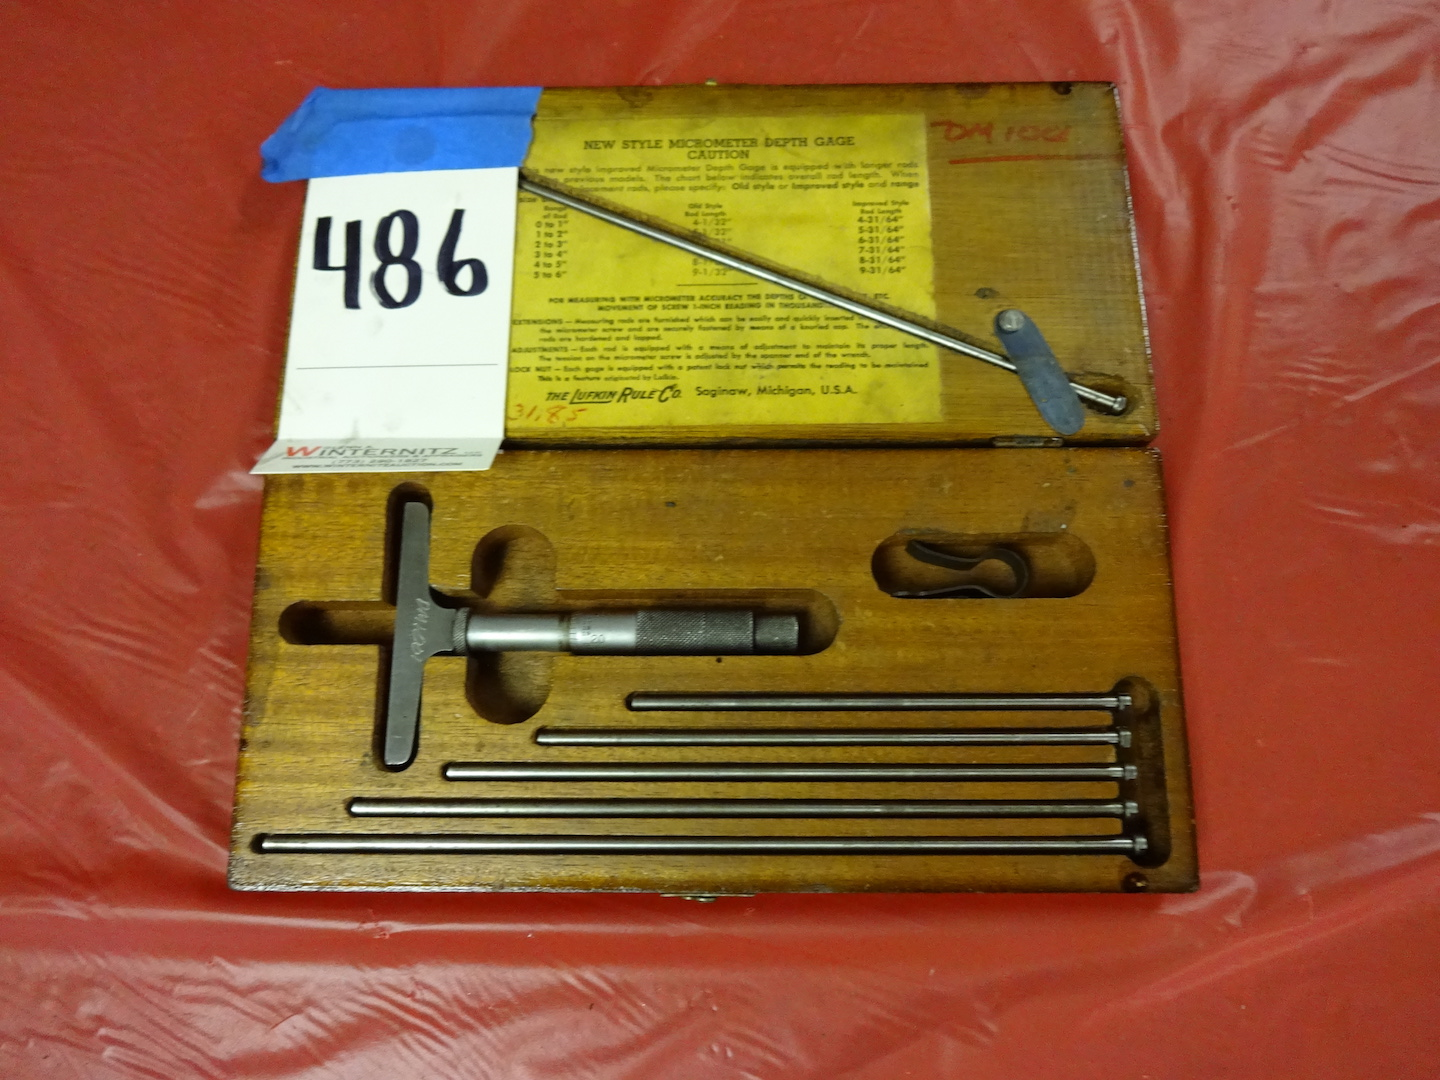 Lot 486 - Lufkin Depth Micrometer